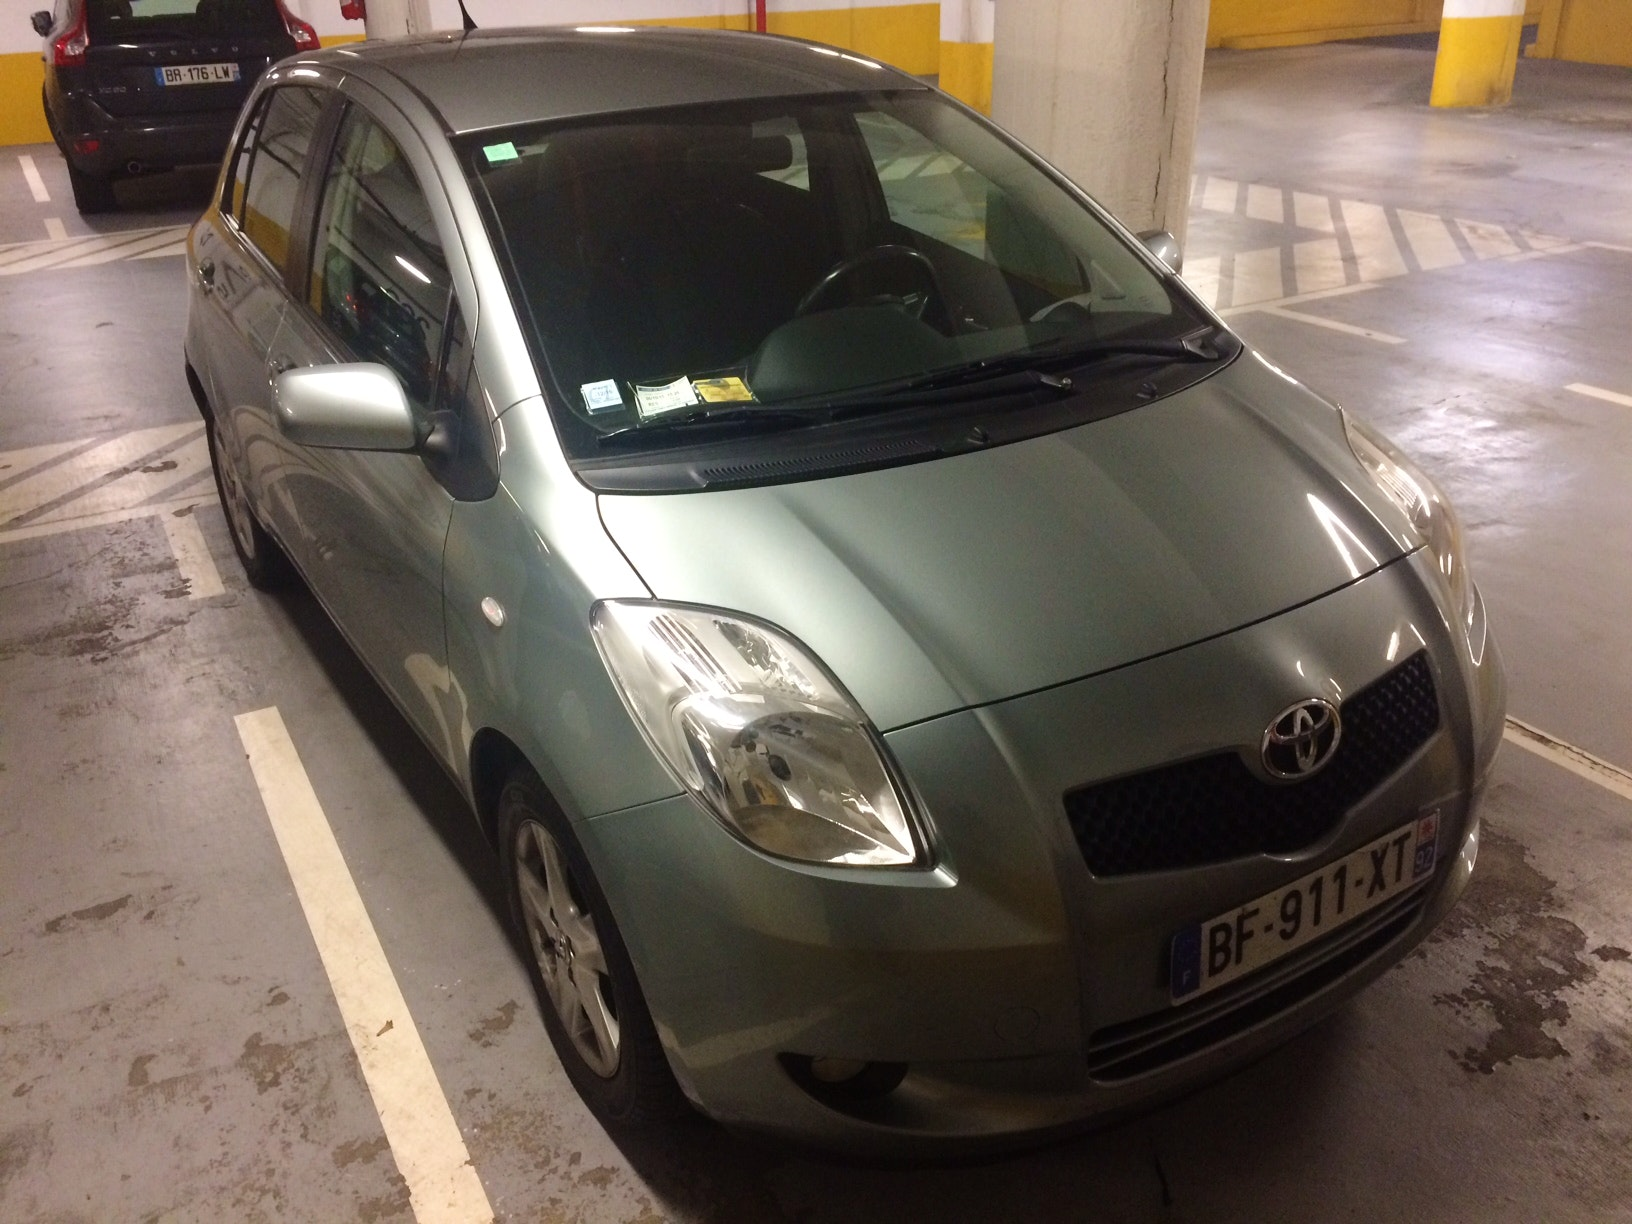 TOYOTA Yaris, 2007, Essence - Citadine Paris (75)